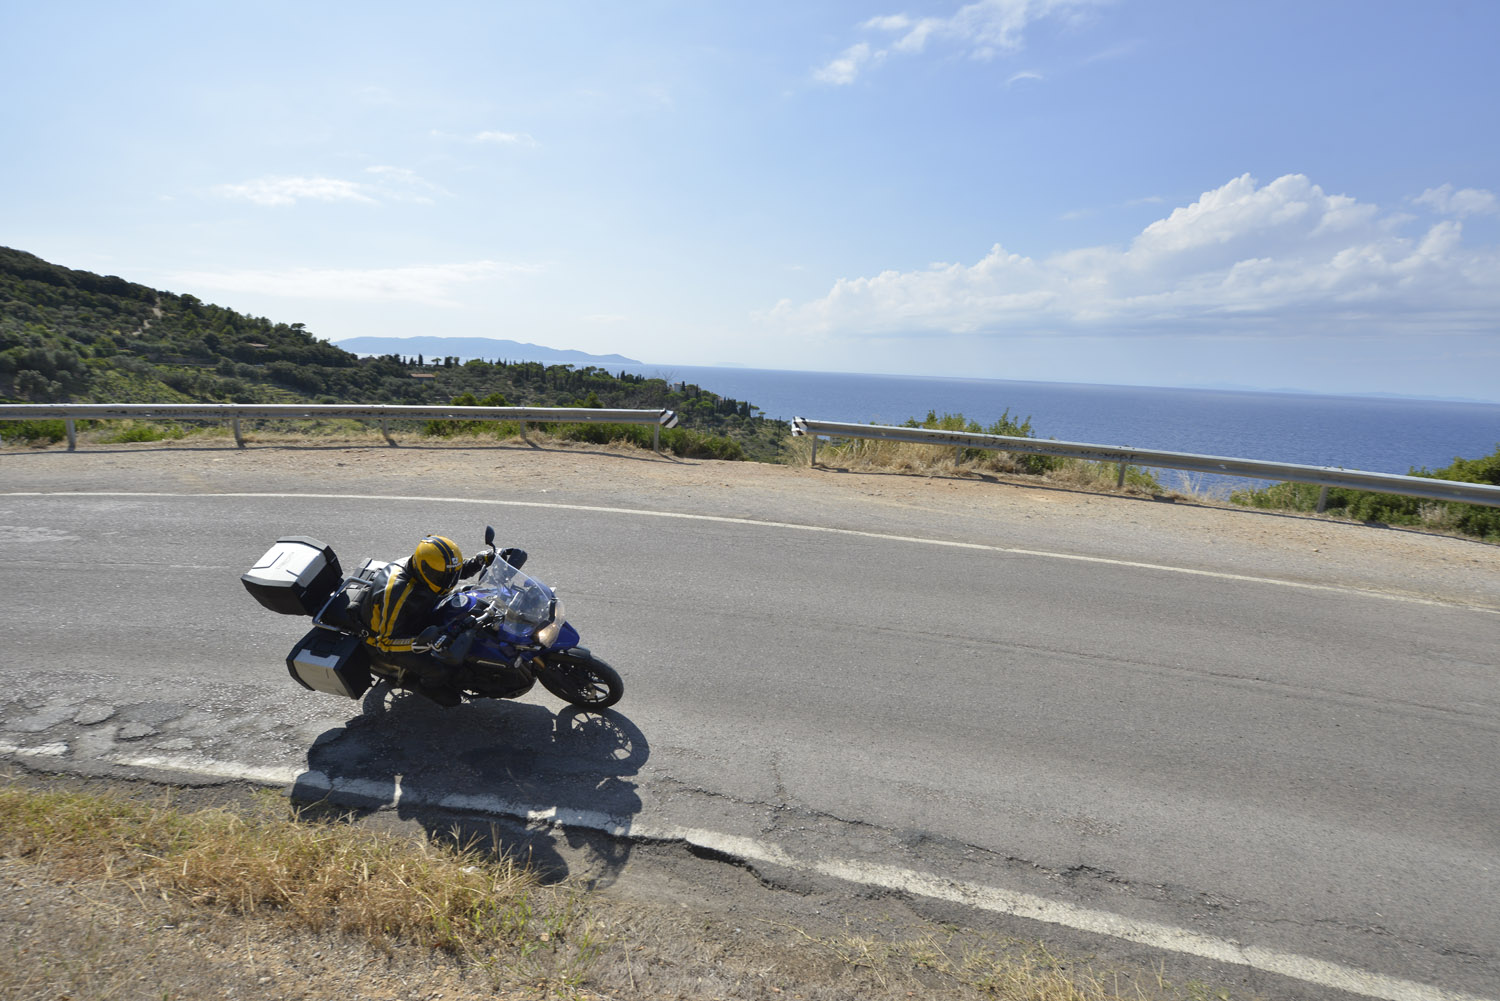 The panoramic road around Monte Argentario sets the tone for the riding on the Tuscan coast